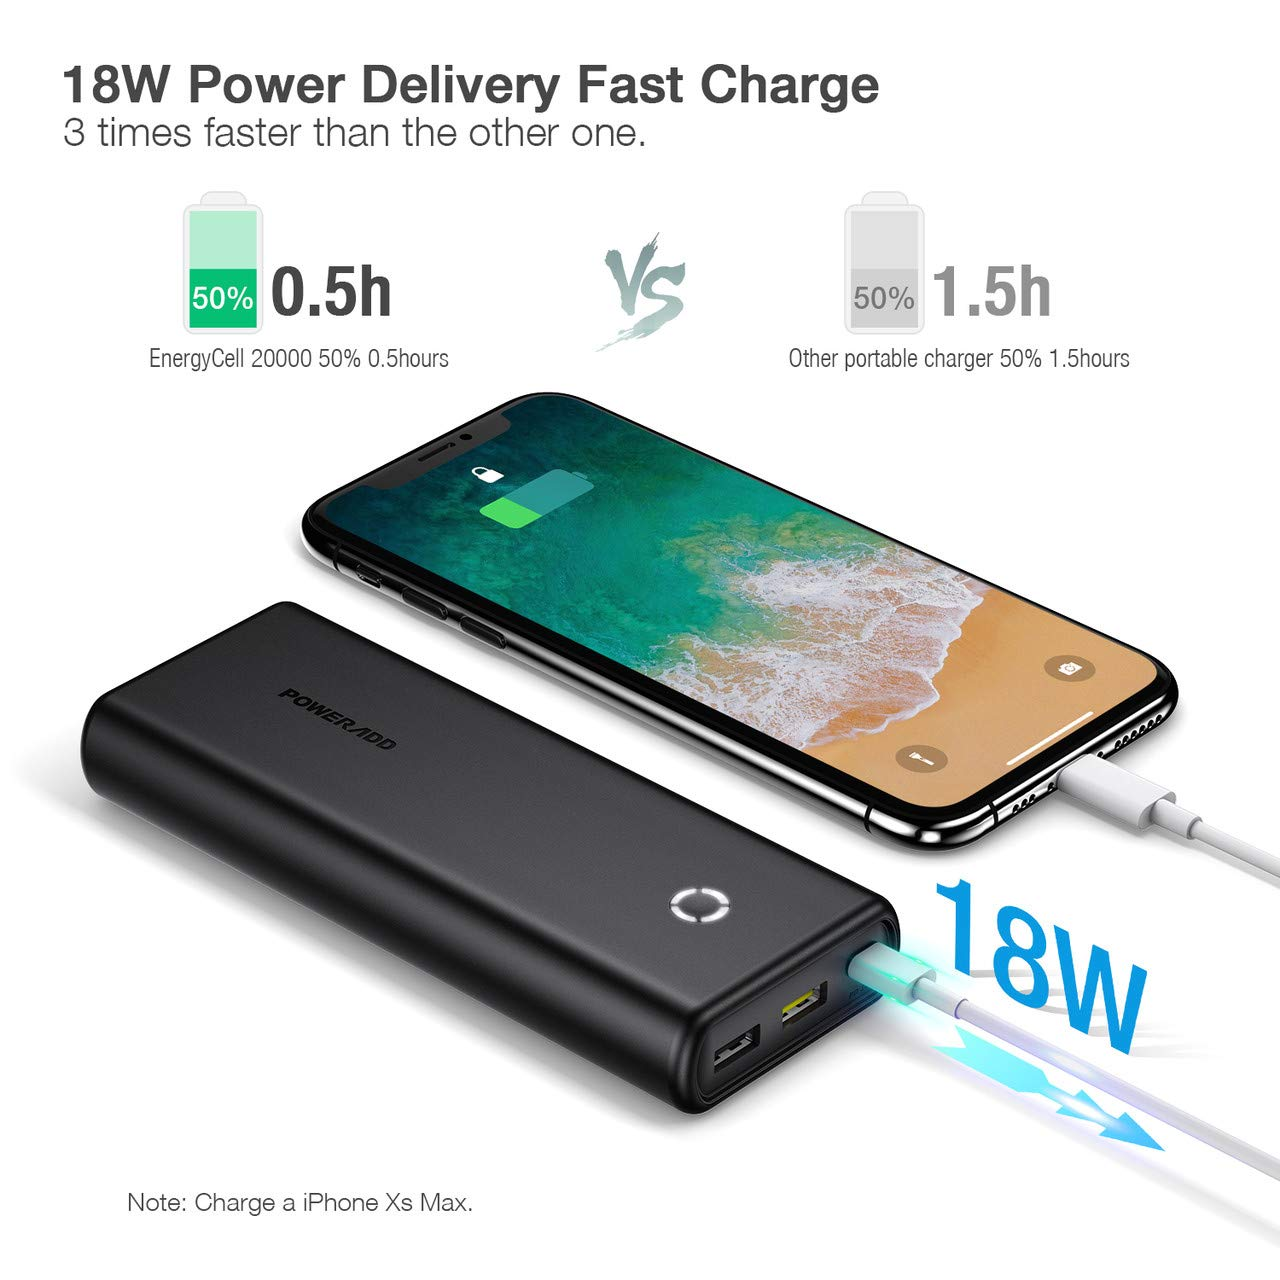 Poweradd PD Portable Charger Power Bank 20000mAh QC3.0 Fast Charge Compatible for iPhone, iPad, Samsung, Huawei, Most Other Phones and Tablets